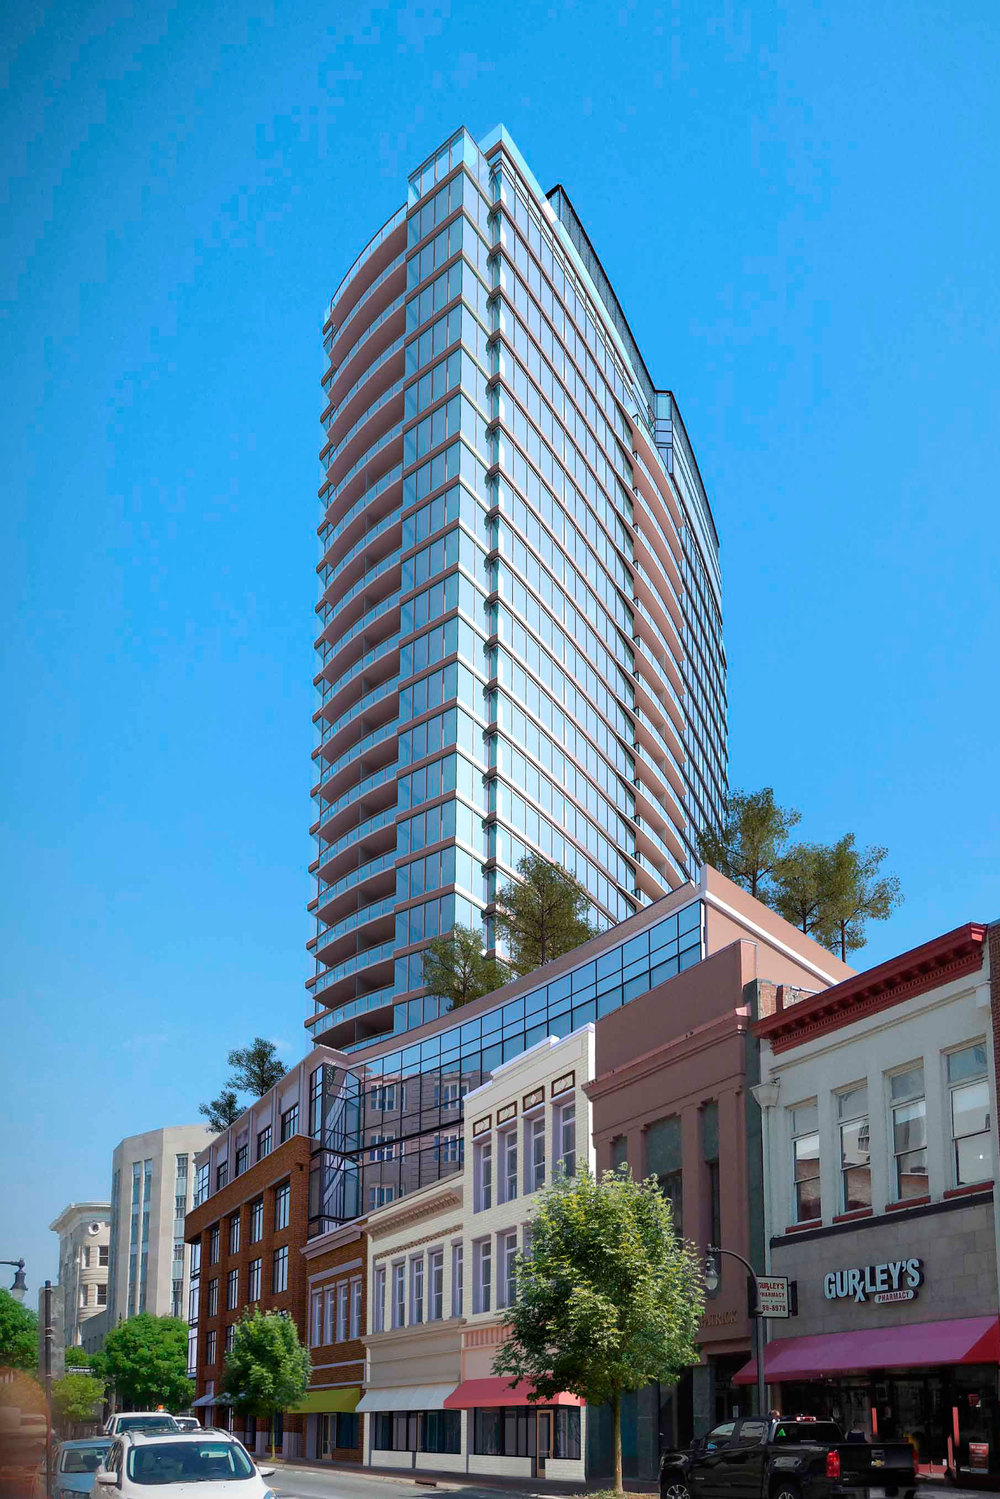 """Last week, Austin Lawrence Partners began initial site work on what will be the tallest building in Durham – a 27-story tower at the corner of Corcoran and Main streets that will be a mix of offices, retail shops, apartments and condominiums."""